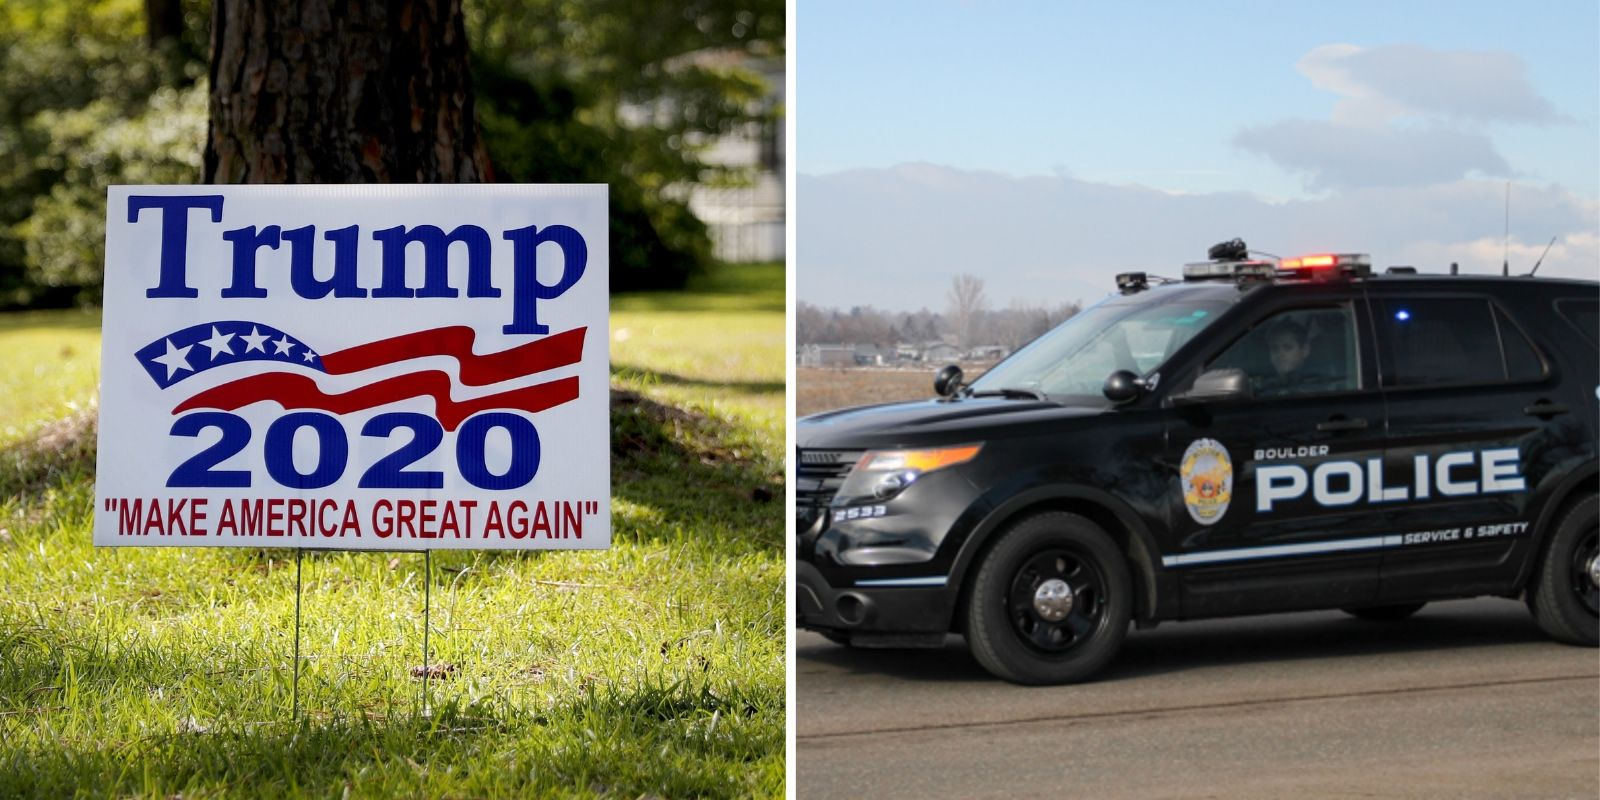 Trump supporting 12-year-old allegedly assaulted by woman in Boulder, Colorado